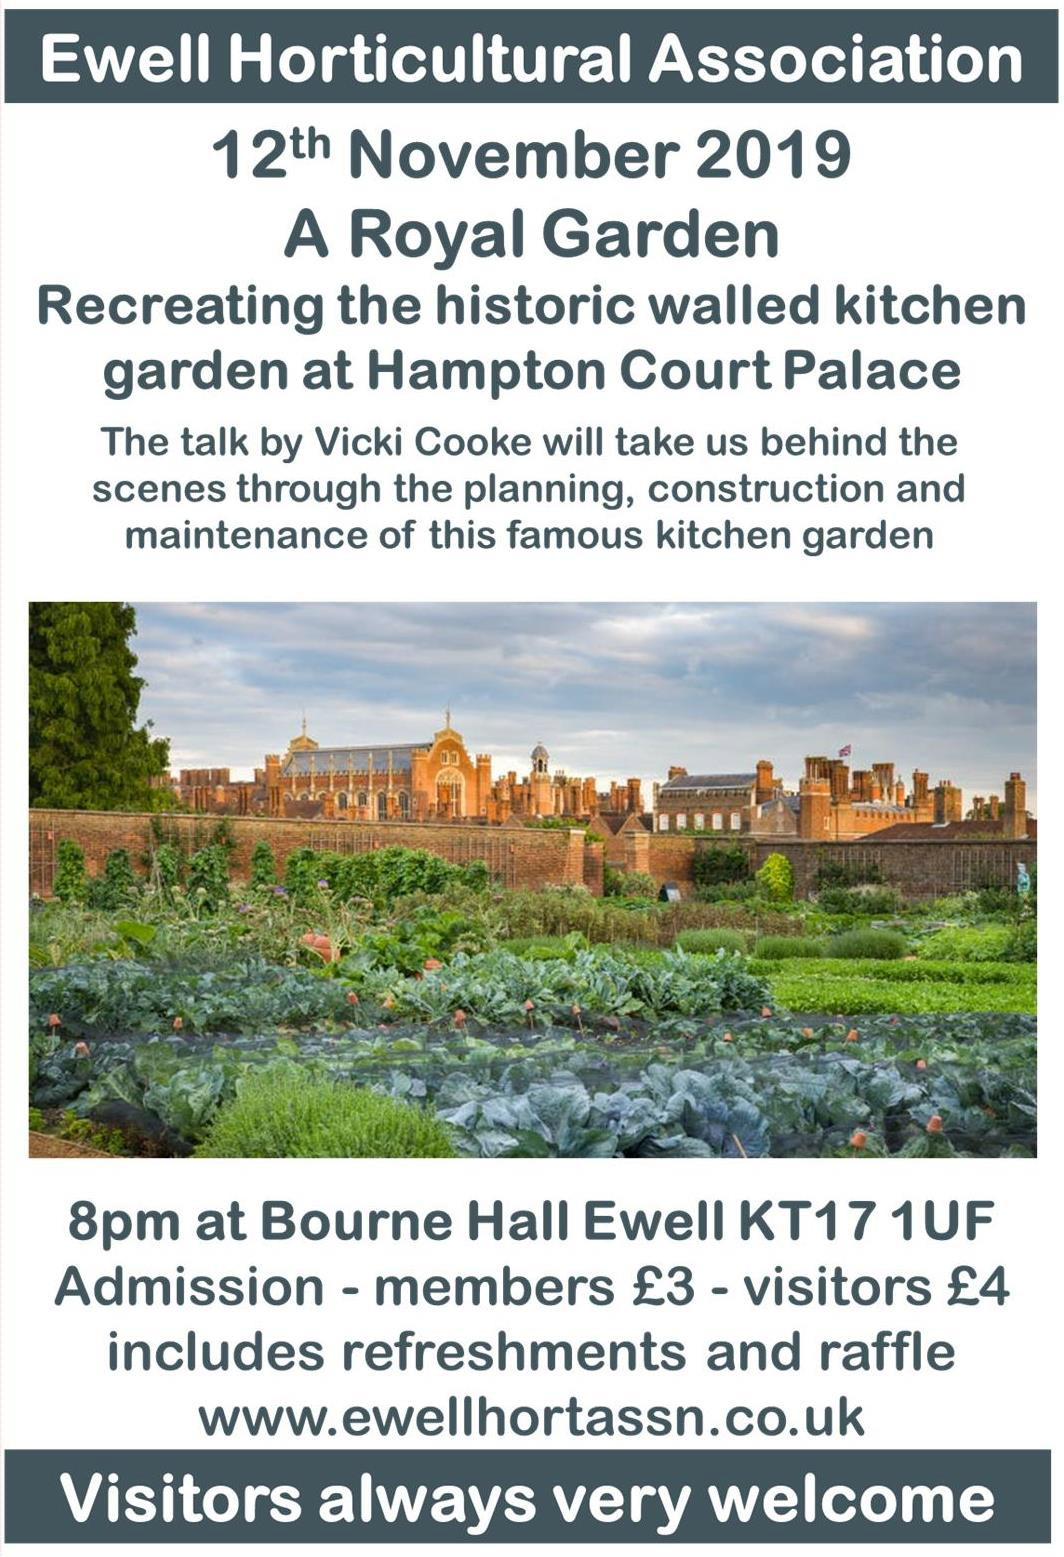 A talk by Vicki Cooke entitled 'A Royal Garden'